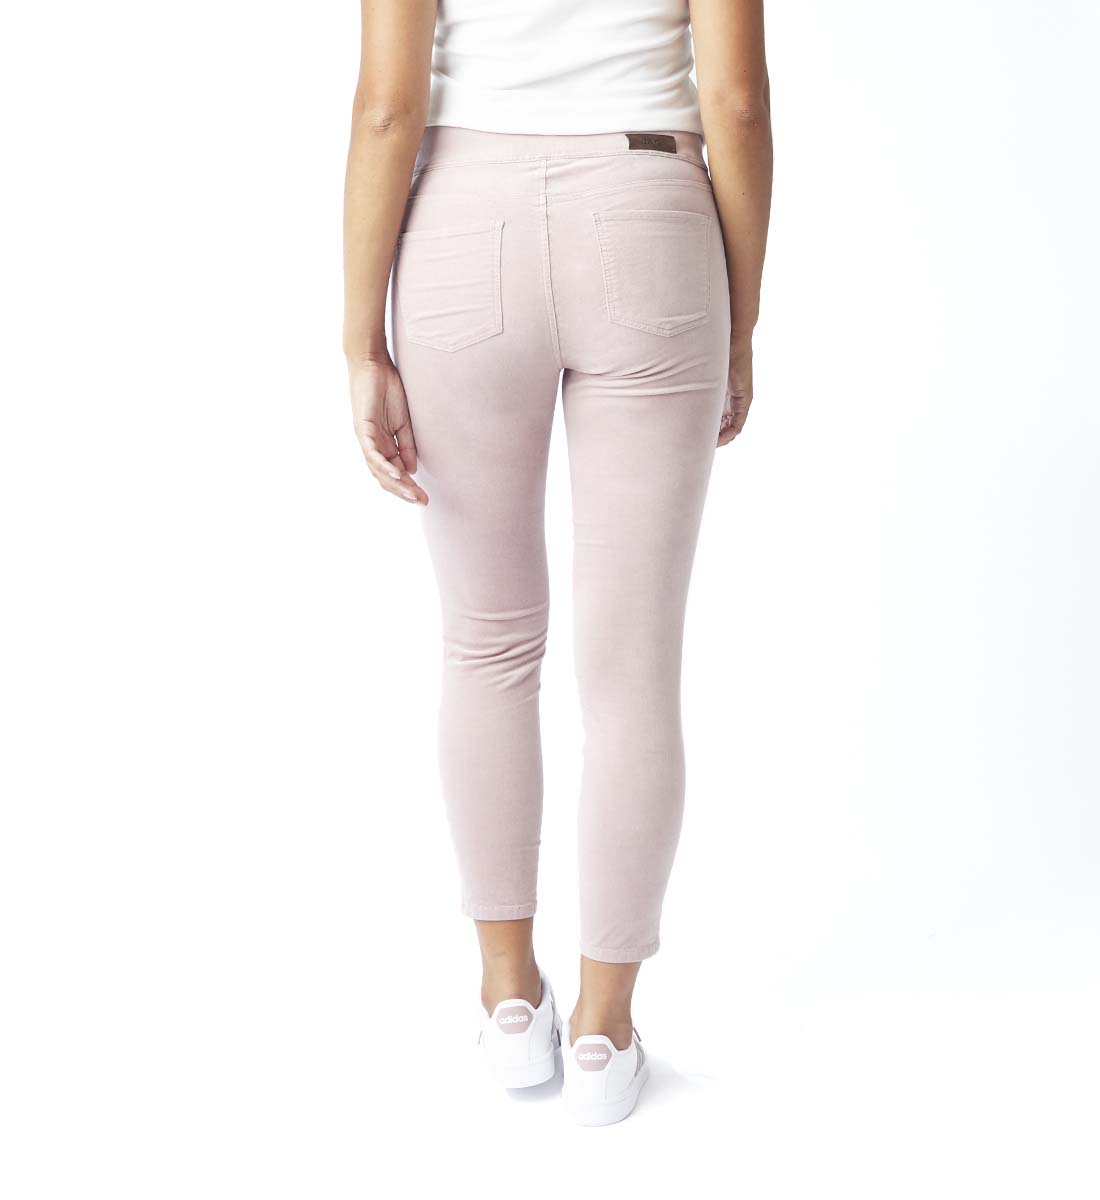 Petite Marla Legging, Dusty Rose, hi-res